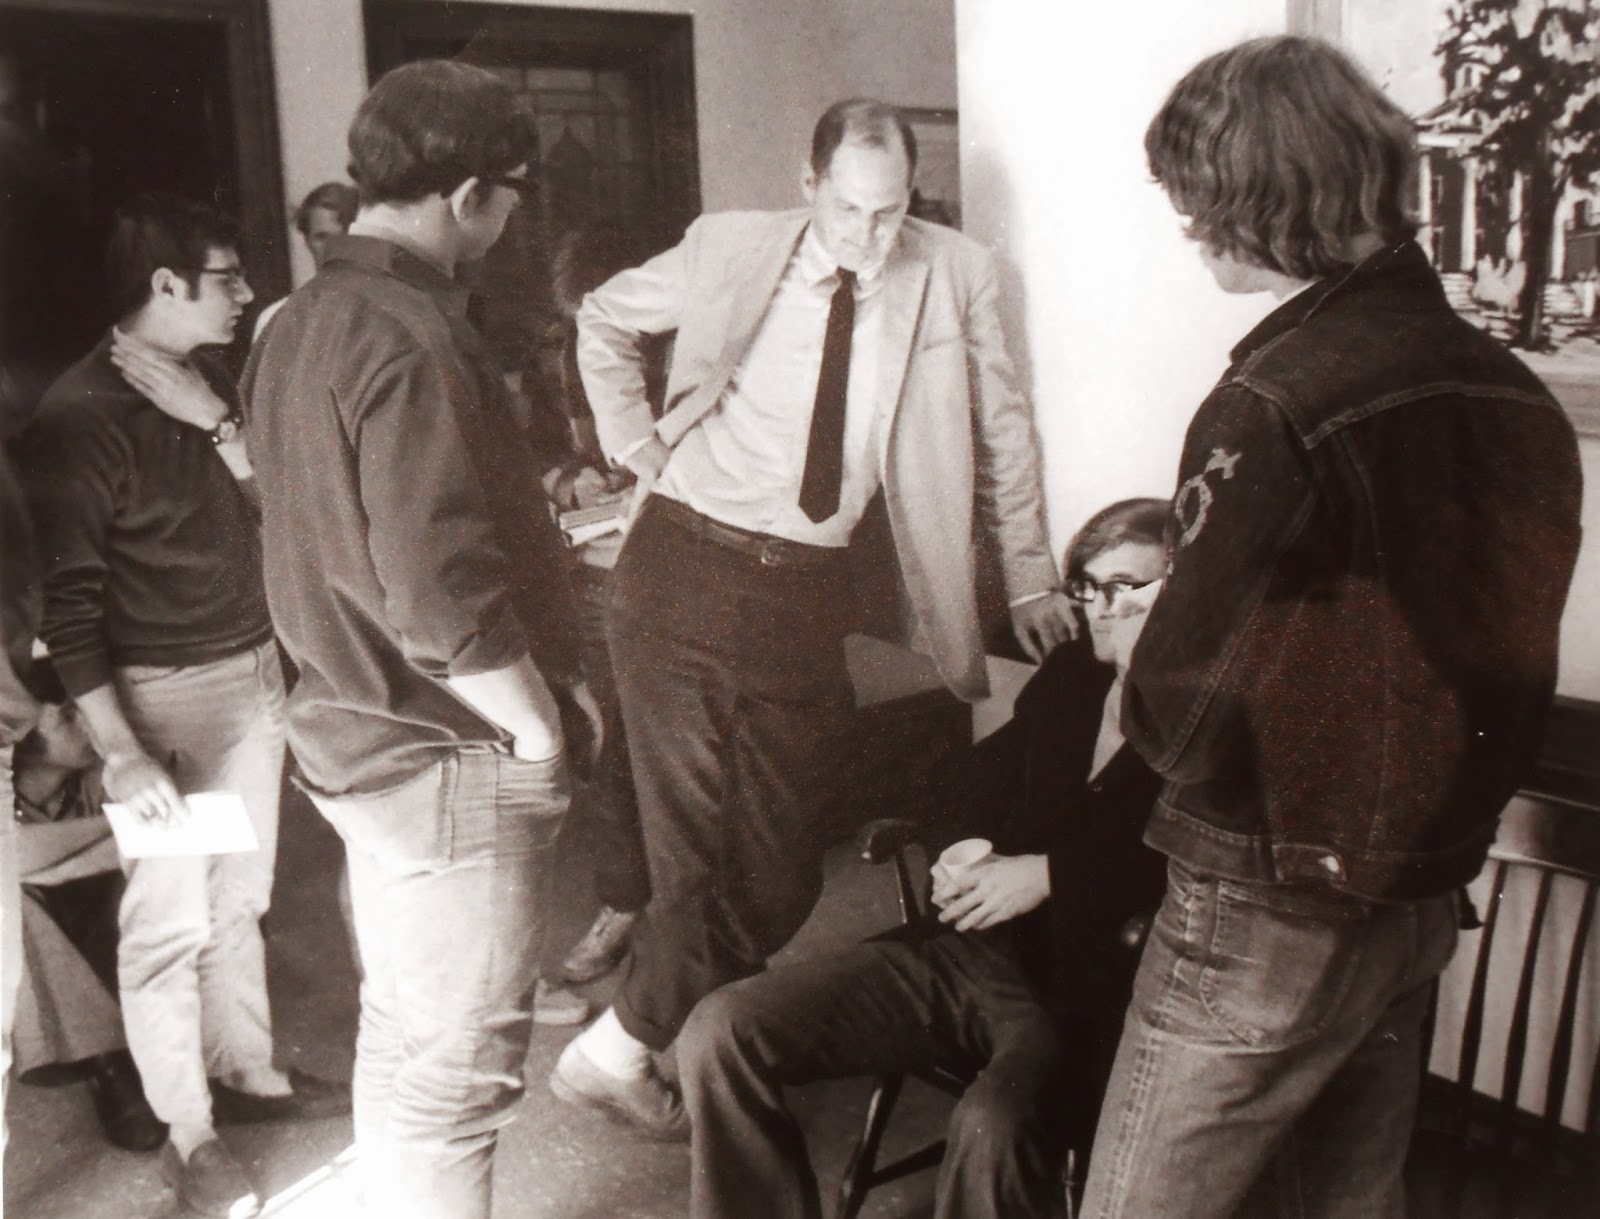 A black and white photograph of a small group of people talking.